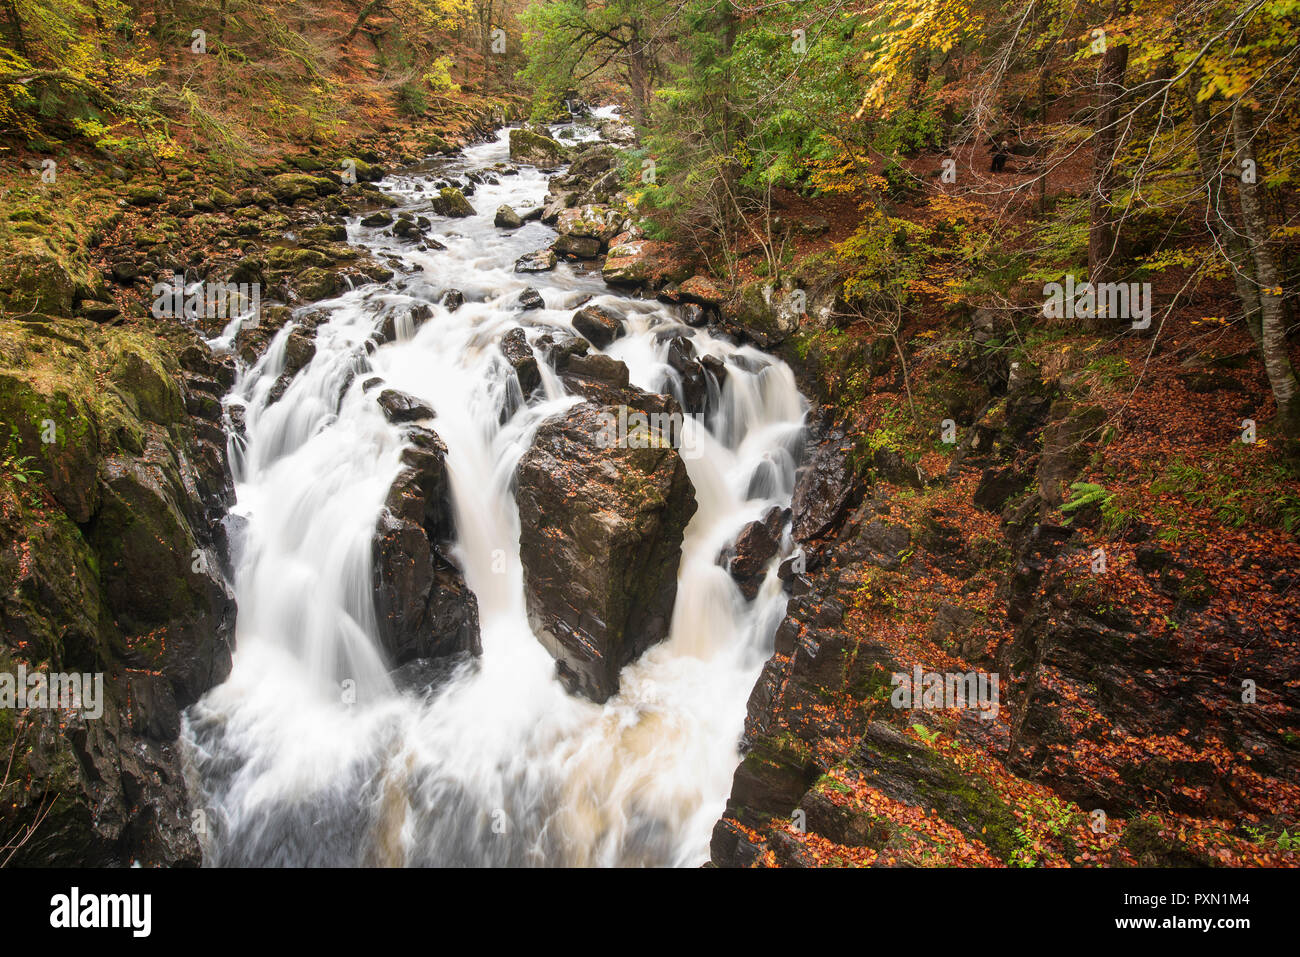 The Black Linn Falls at the Hermitage near Dunkeld, Perthshire, Scotland. - Stock Image